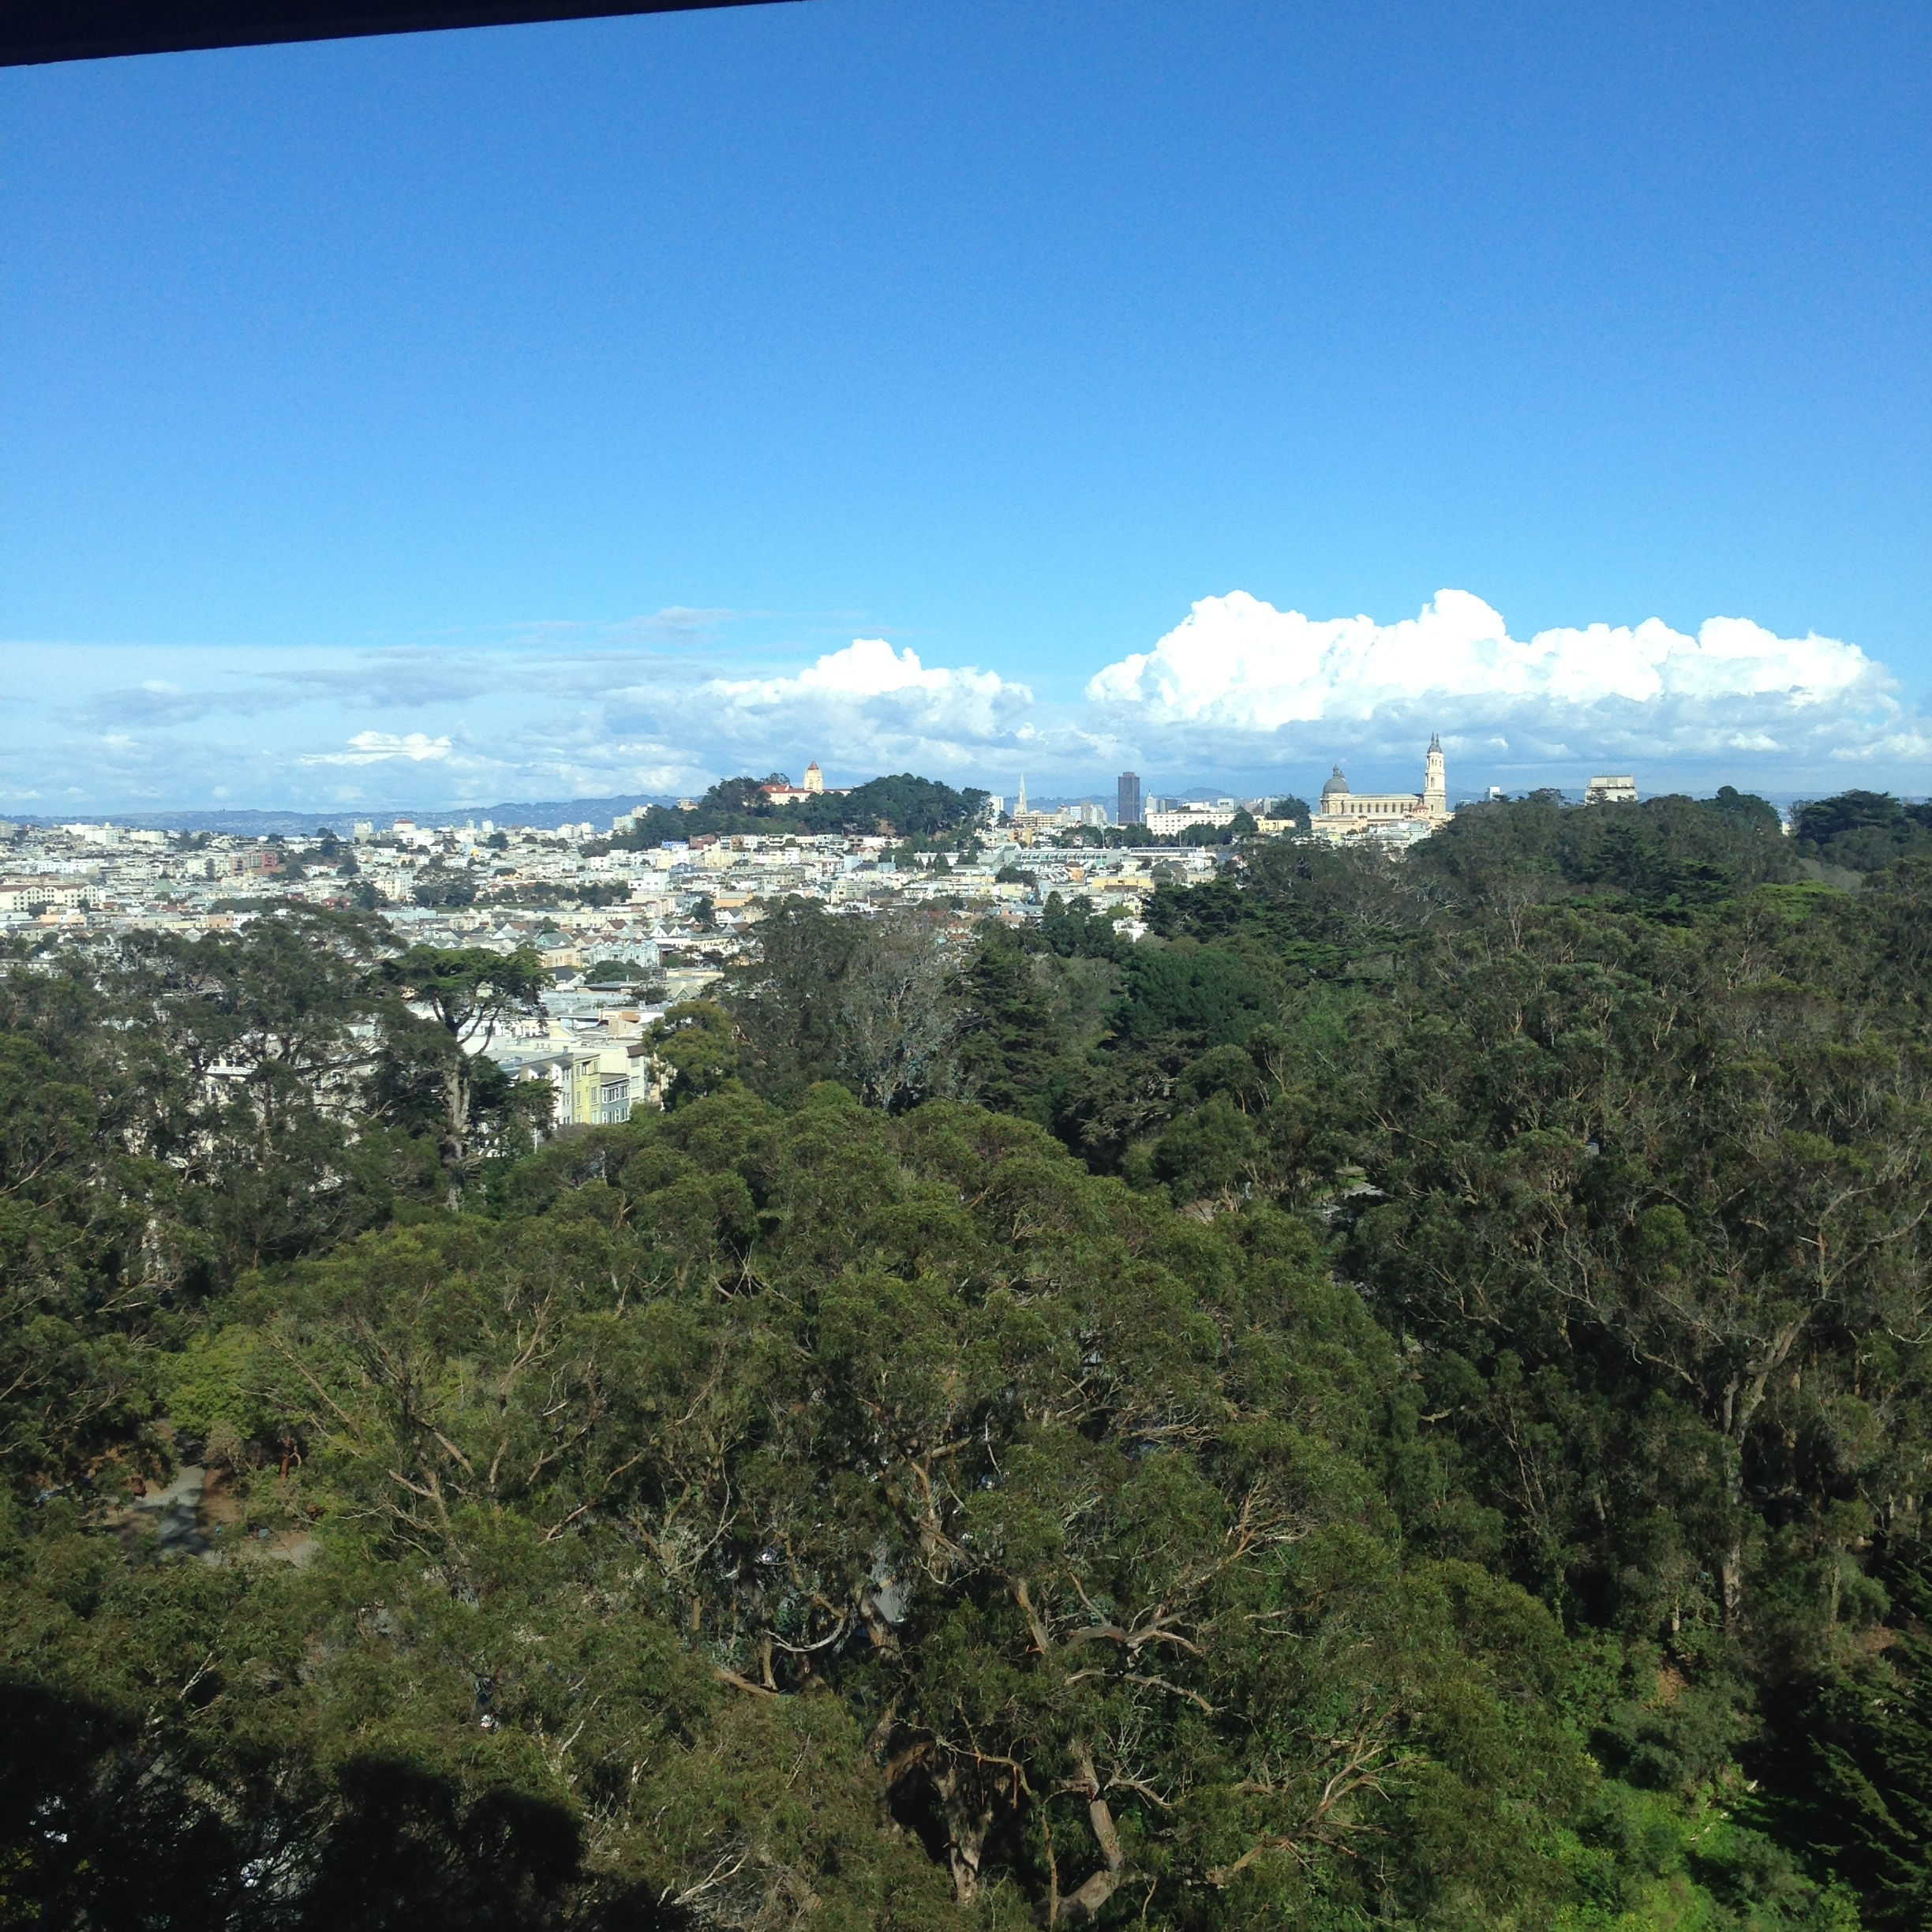 View from the Hamon Observation Tower overlooking Golden Gate Park and The City.